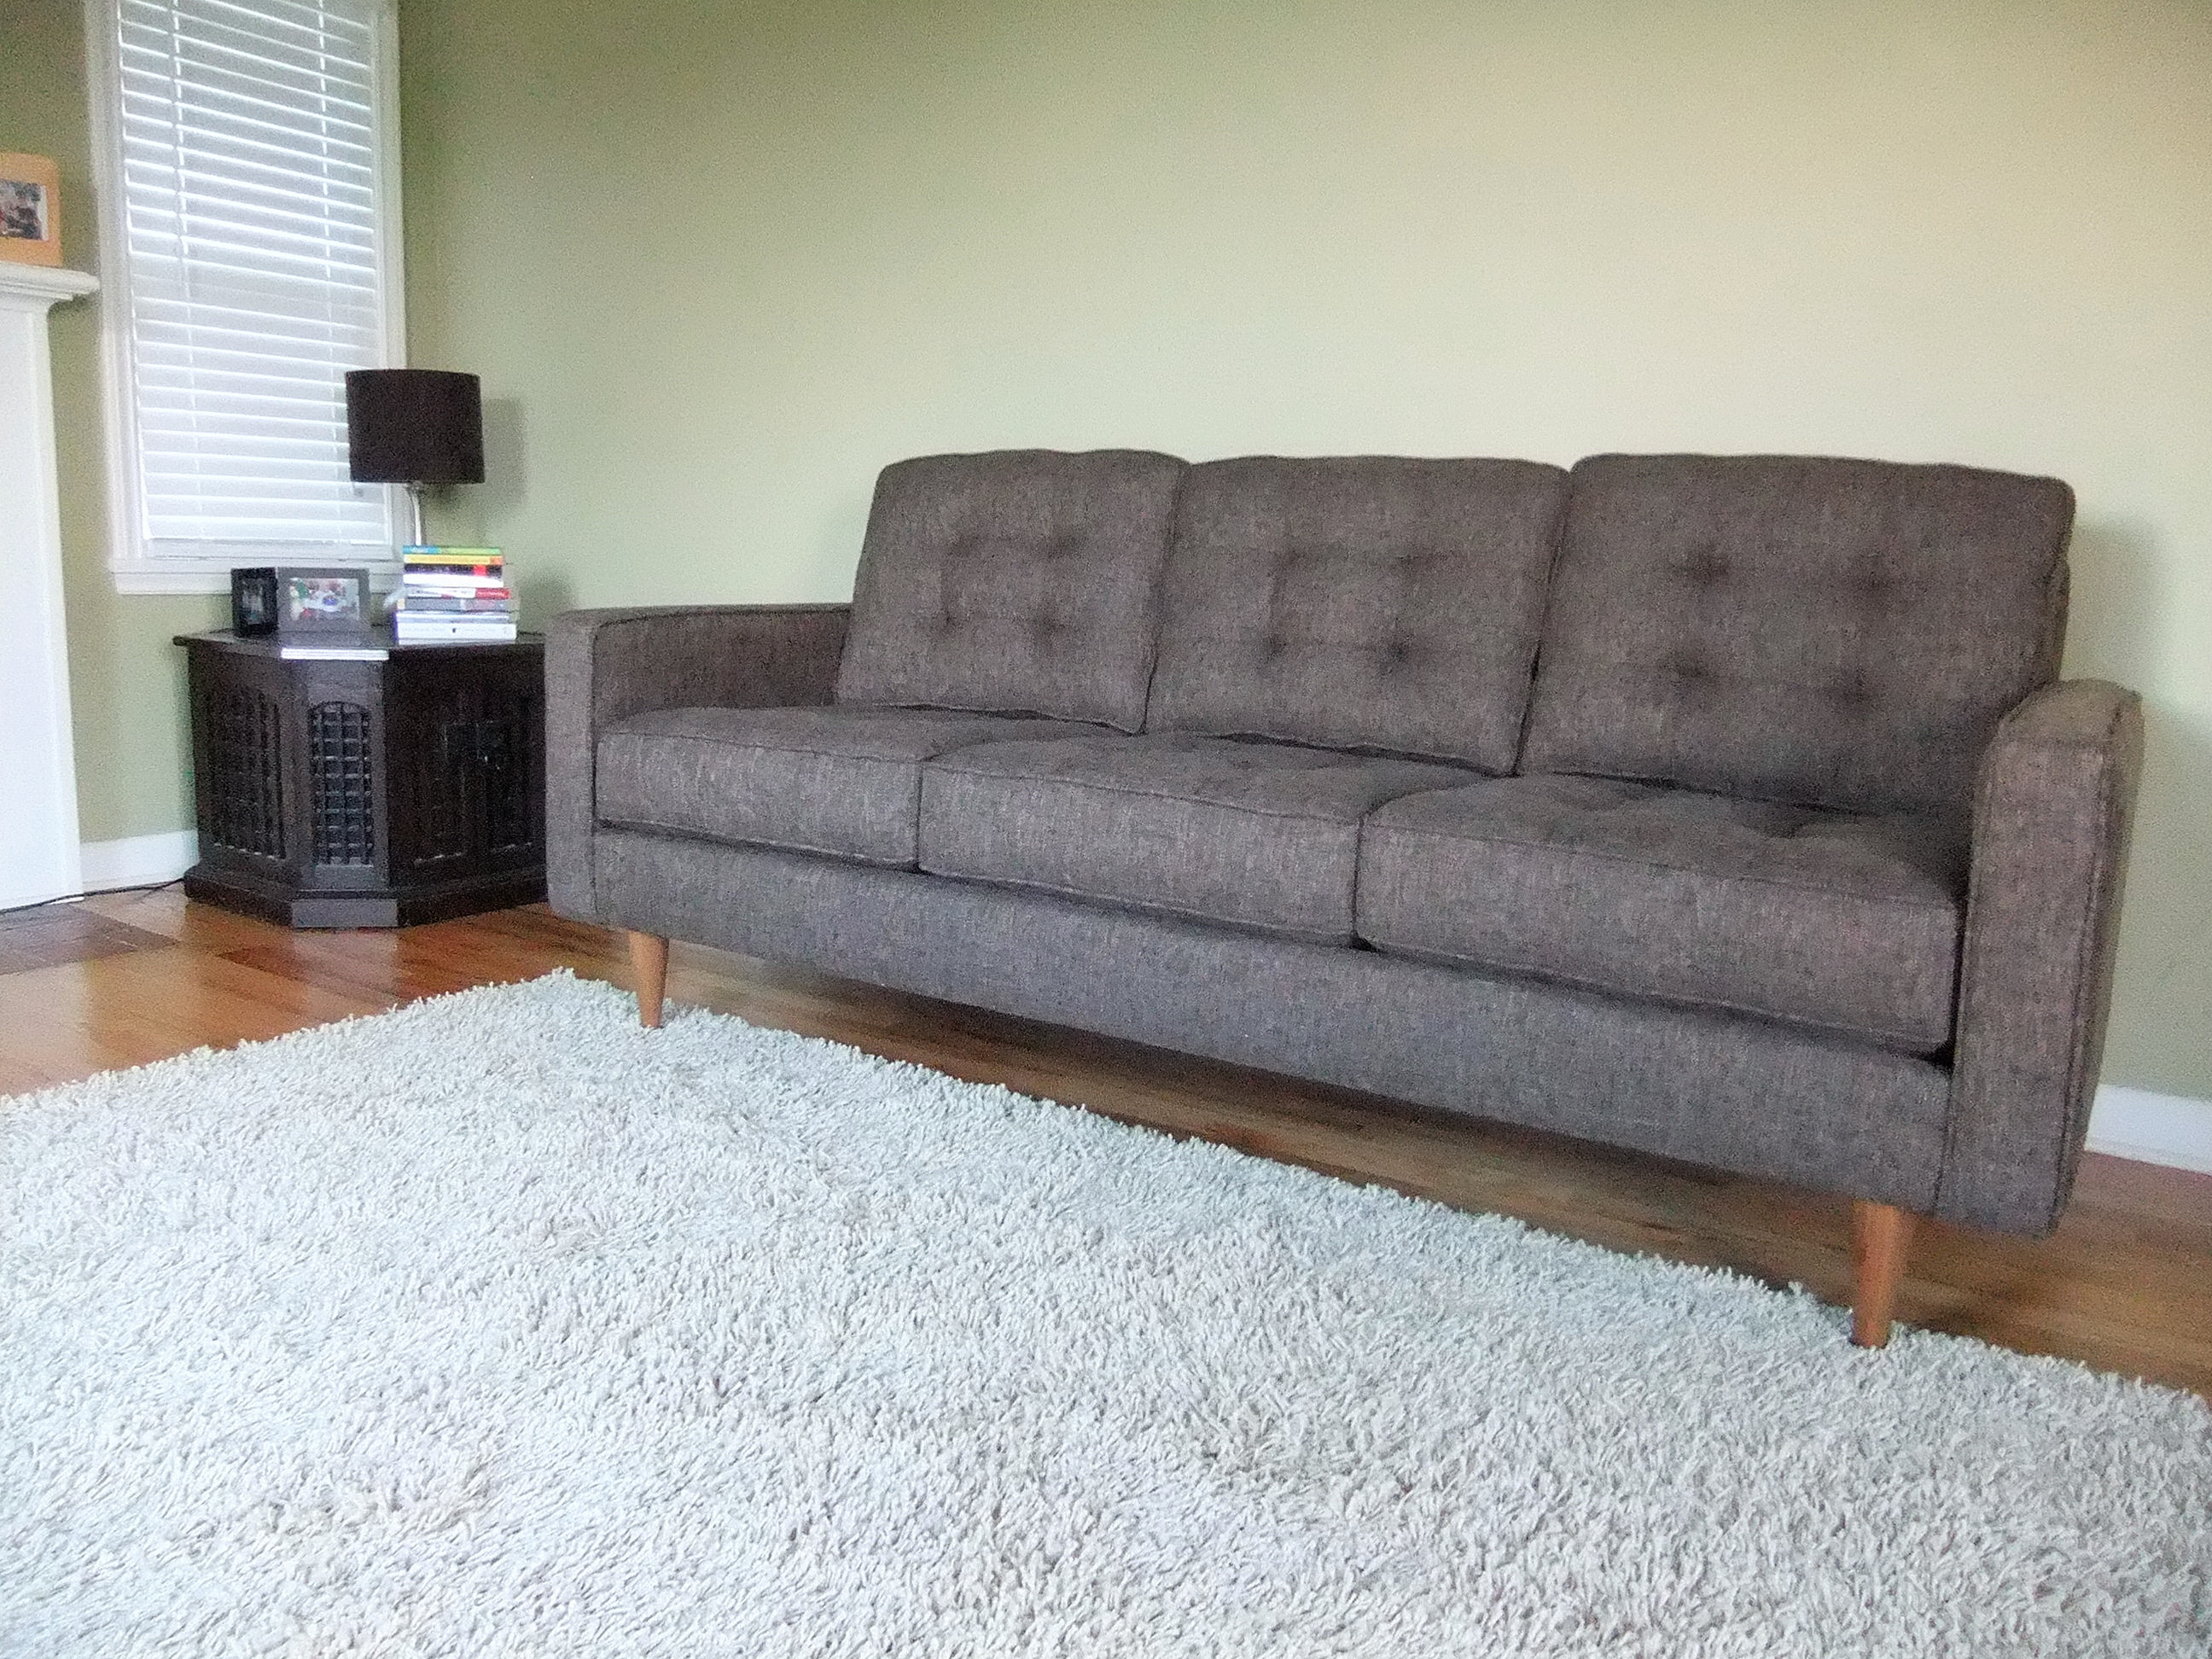 kasala sydney sofa lacrosse furniture ludlow twin sleeper more products couch seattle amazingly